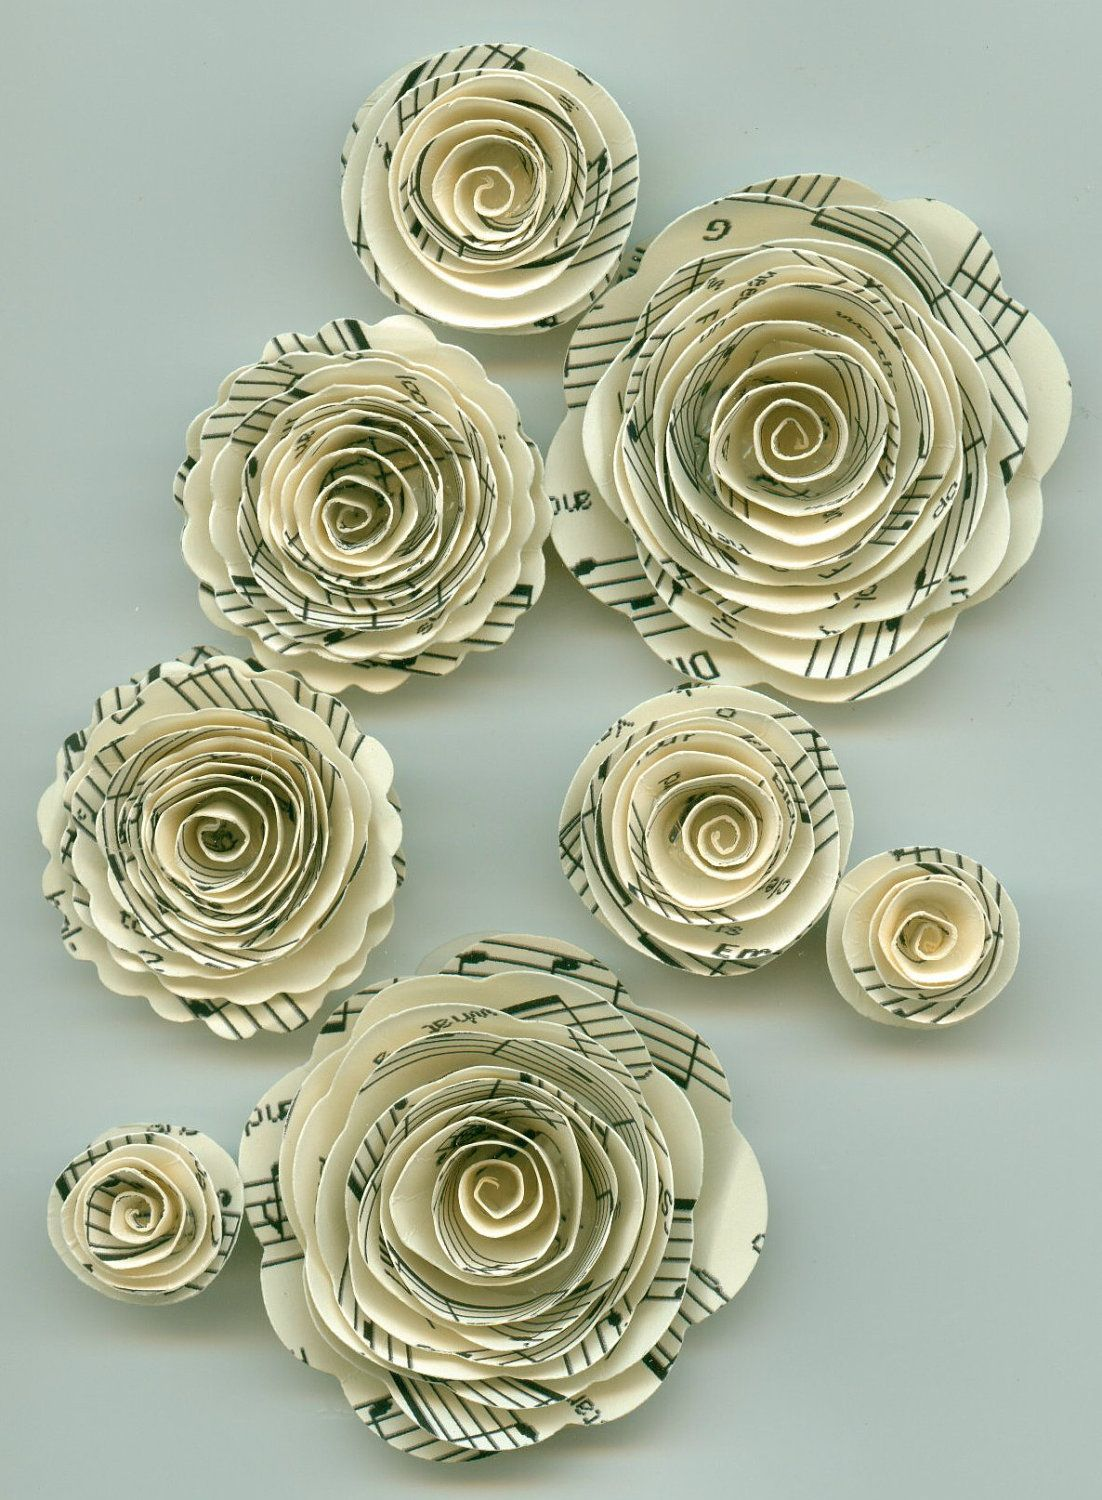 Music Note Rose Spiral Paper Flowers For Weddings Bouquets Events